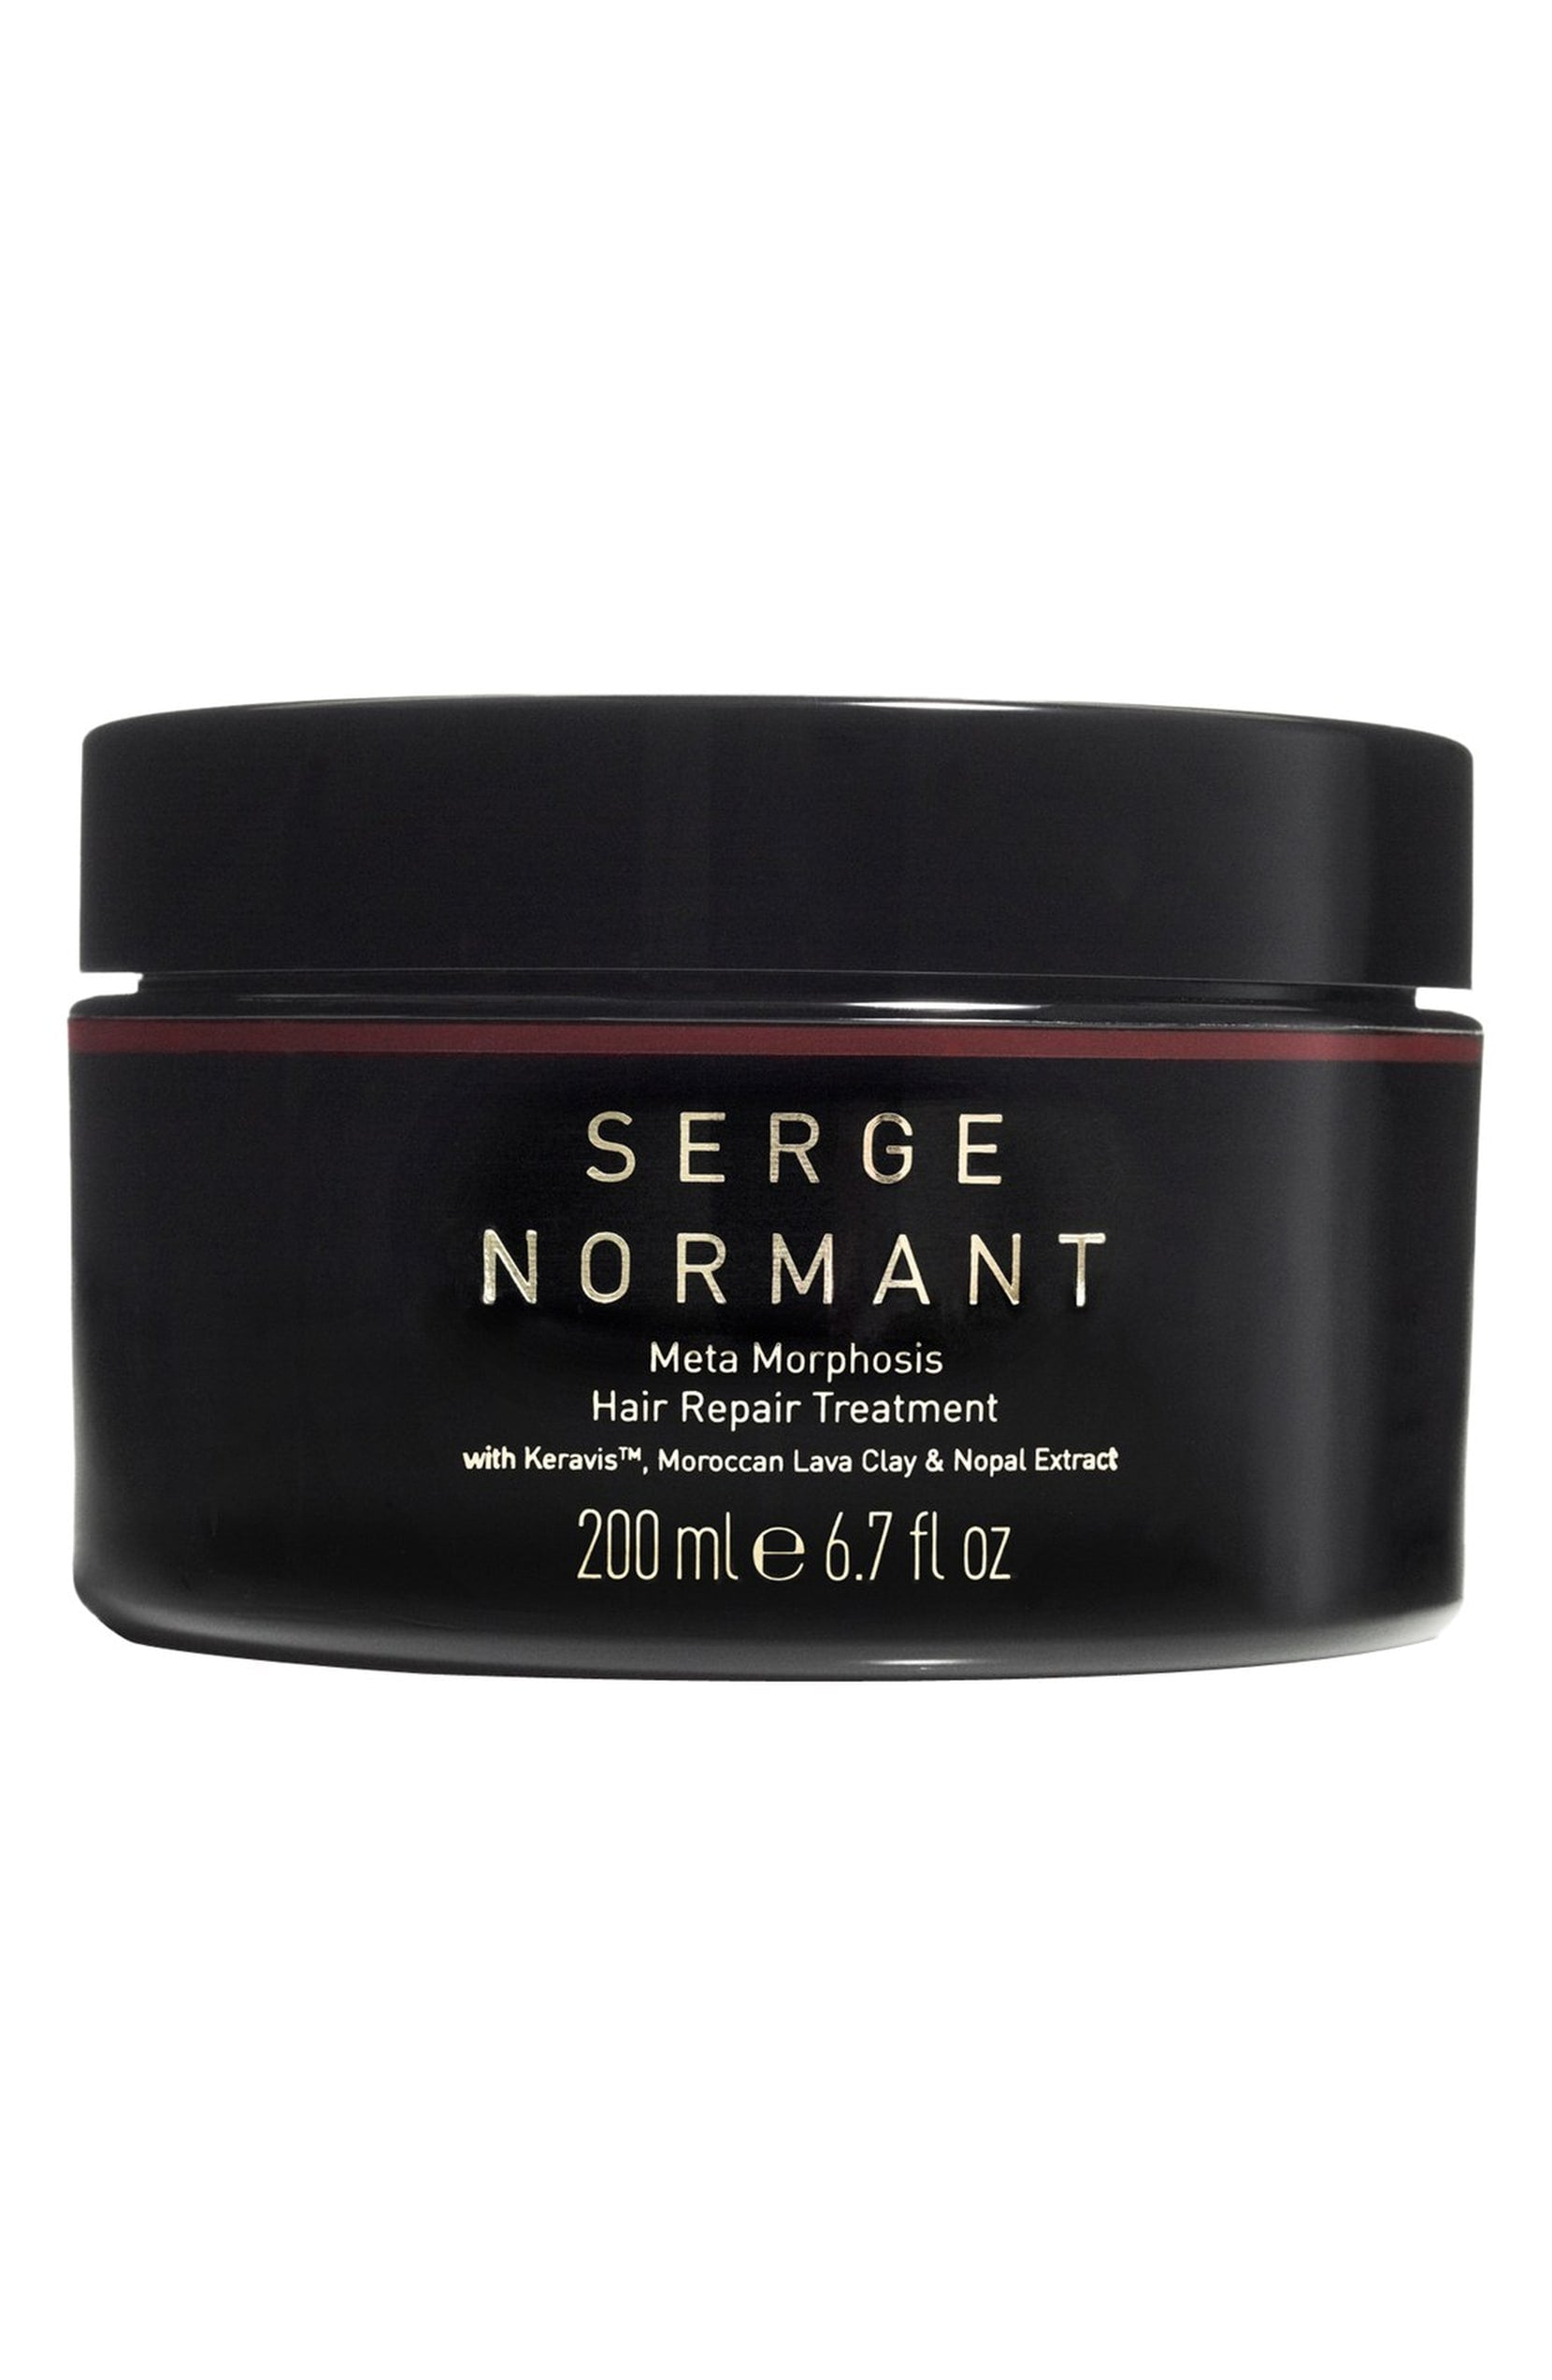 Shop Serge Normant Meta Morphosis Hair Repair Treatment at New London Pharmacy 6.7 fl oz. Free shipping.